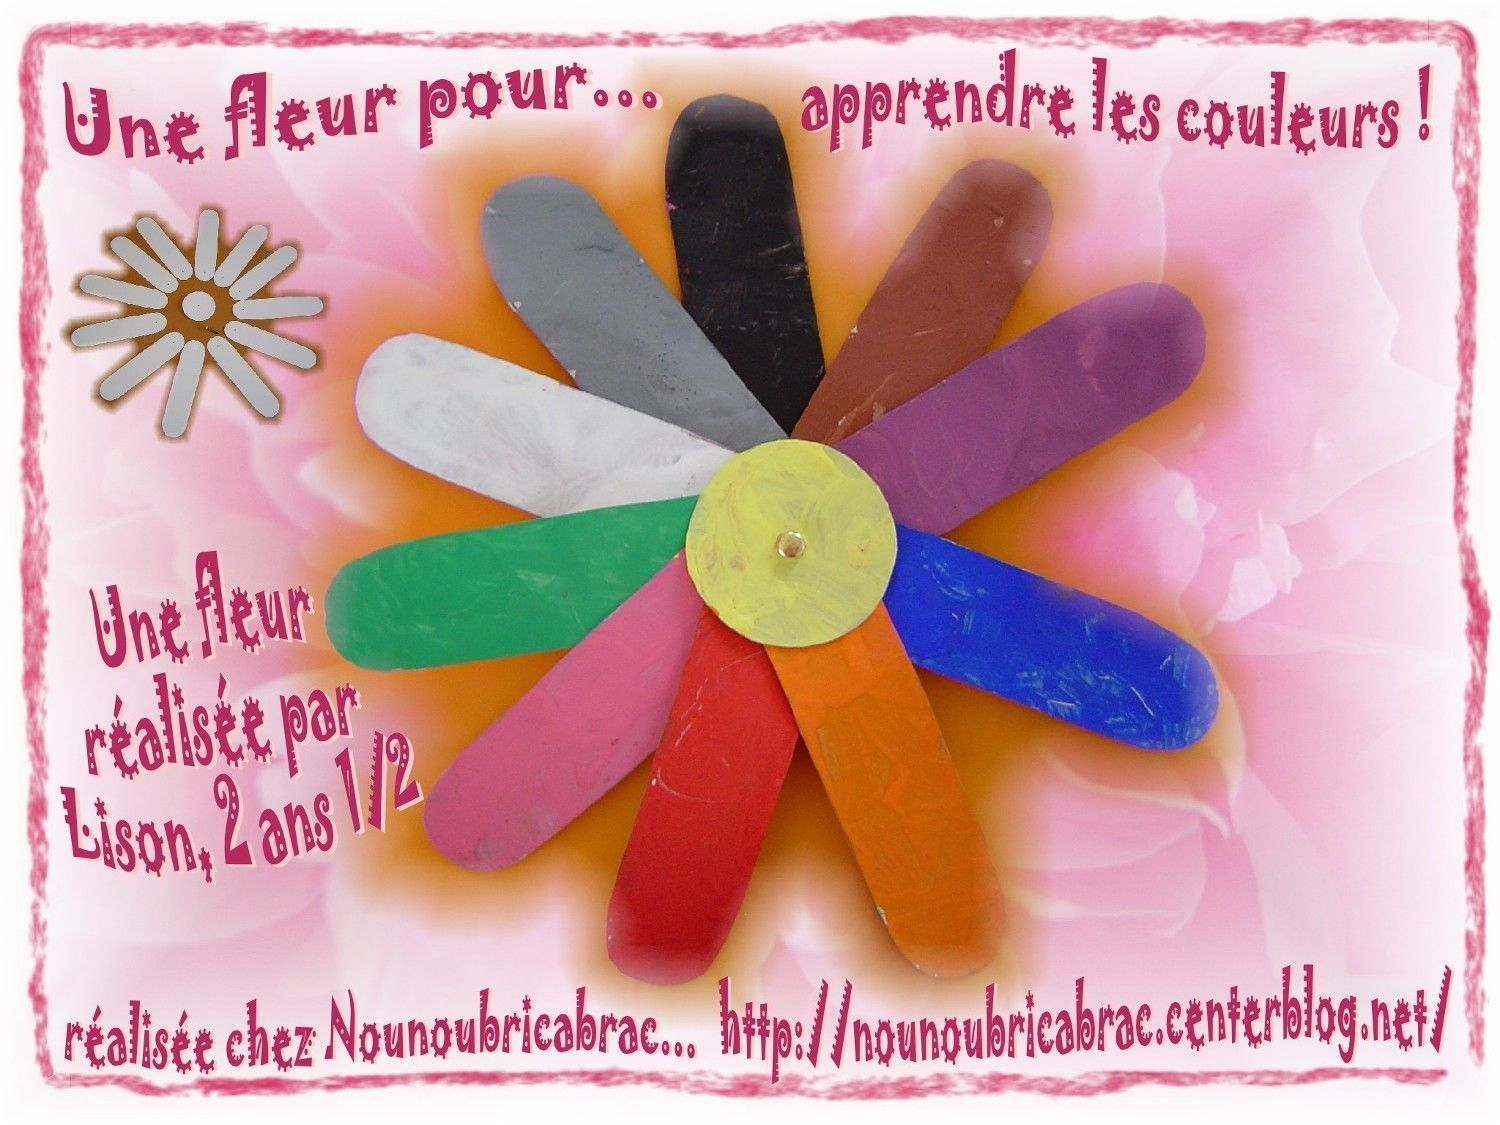 Une fleur pour apprendre les couleurs... ralise par Lison, 2 ans 1/2